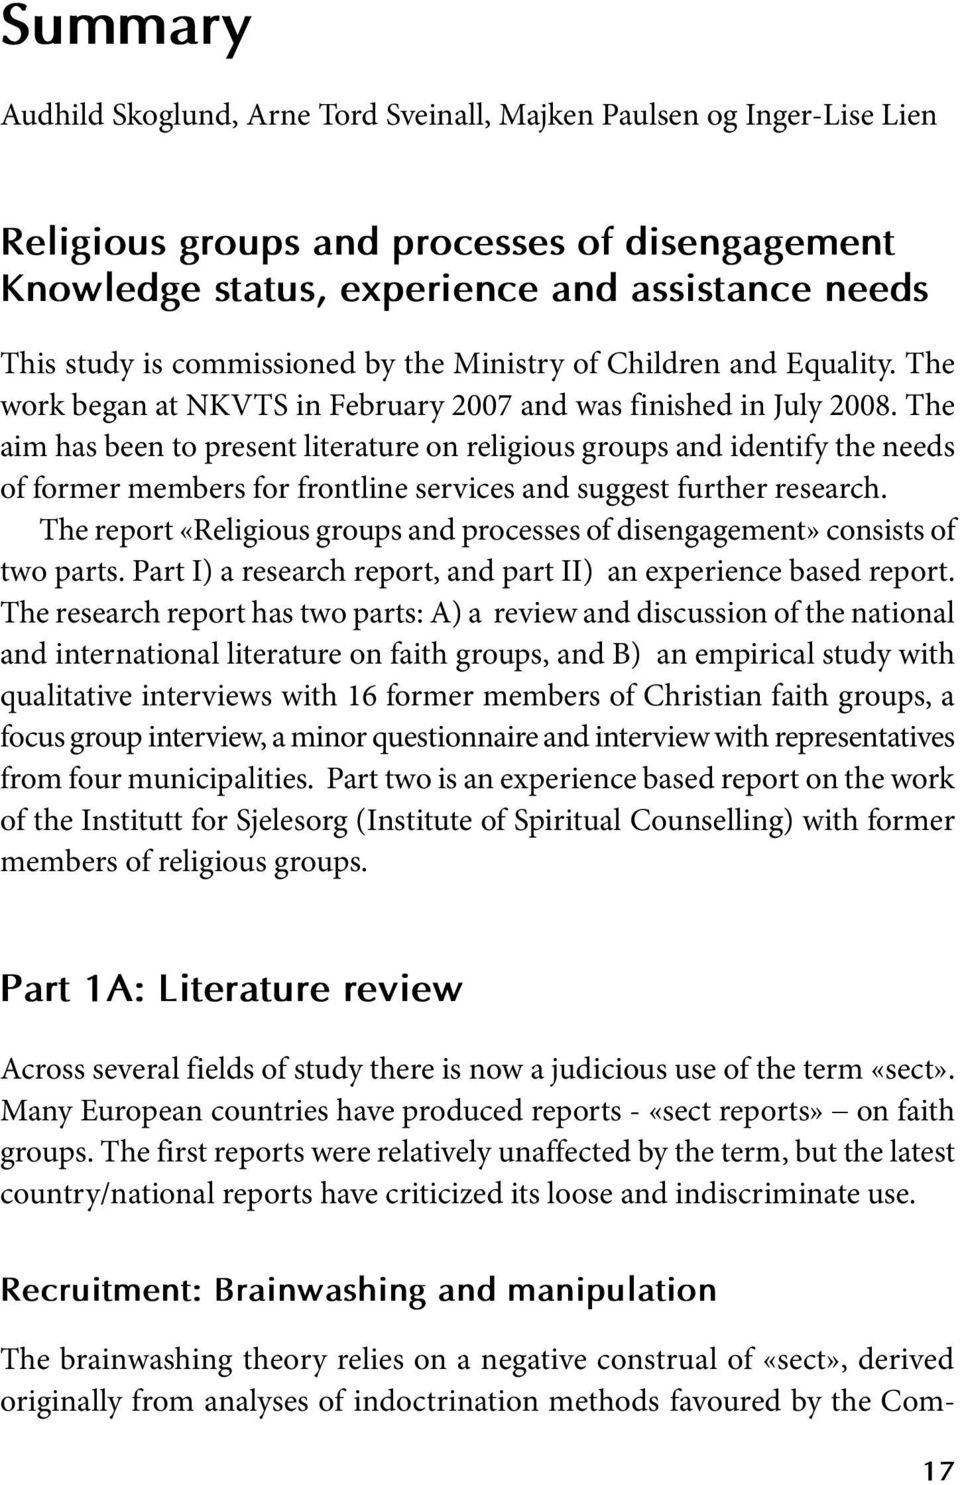 The aim has been to present literature on religious groups and identify the needs of former members for frontline services and suggest further research.